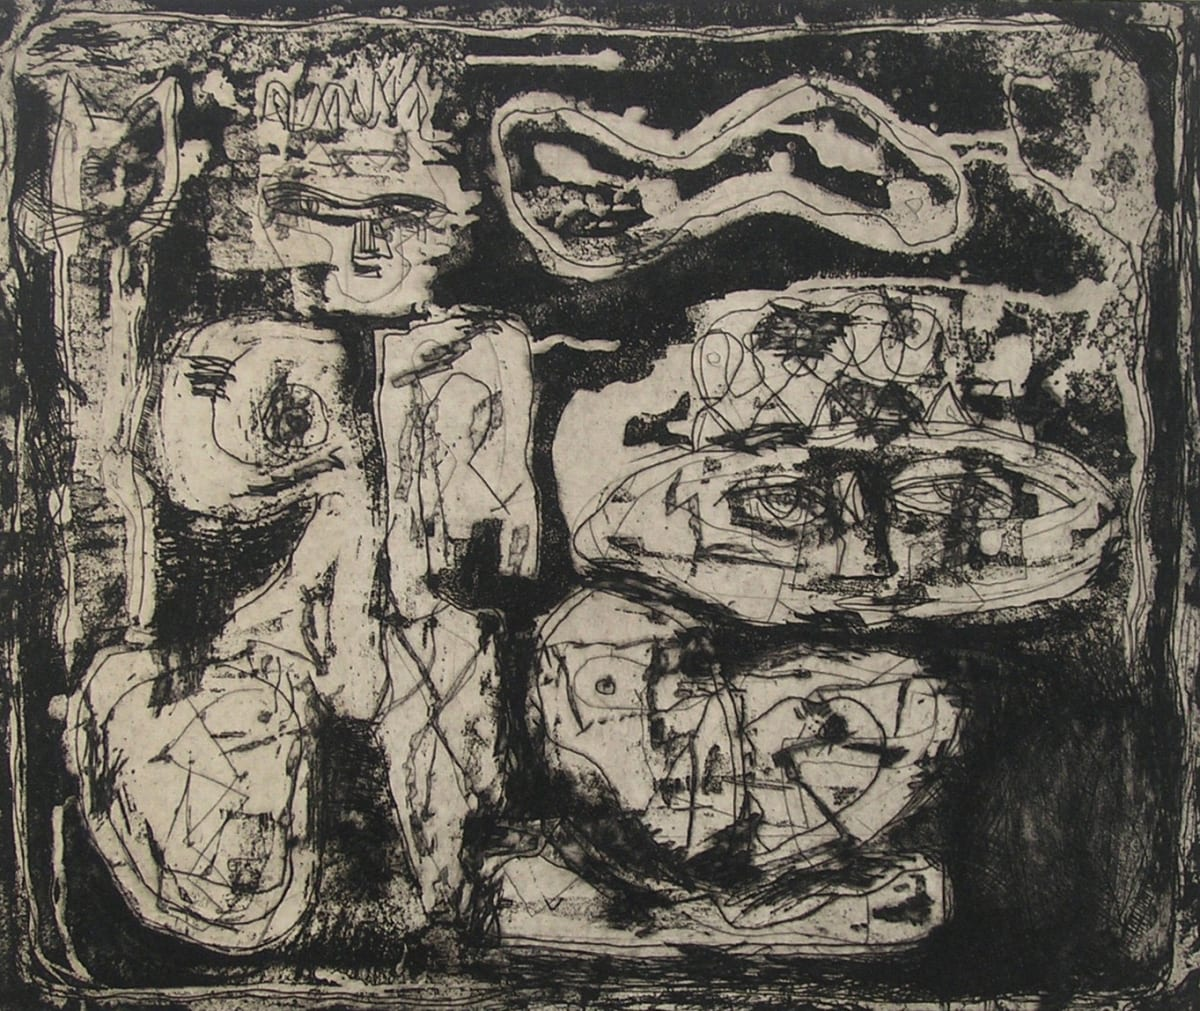 Louise Nevelson, The Wild Jungle, c. 1953